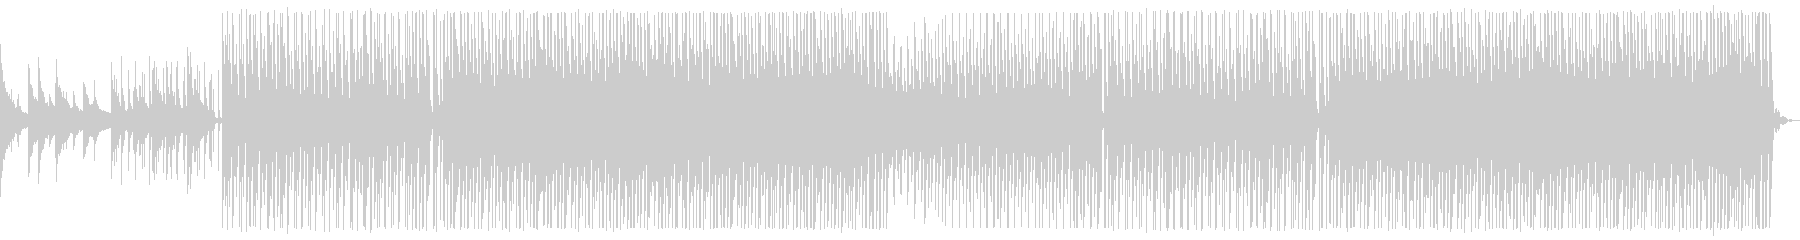 The end of summer. Tropical house_2's unreproduced waveform